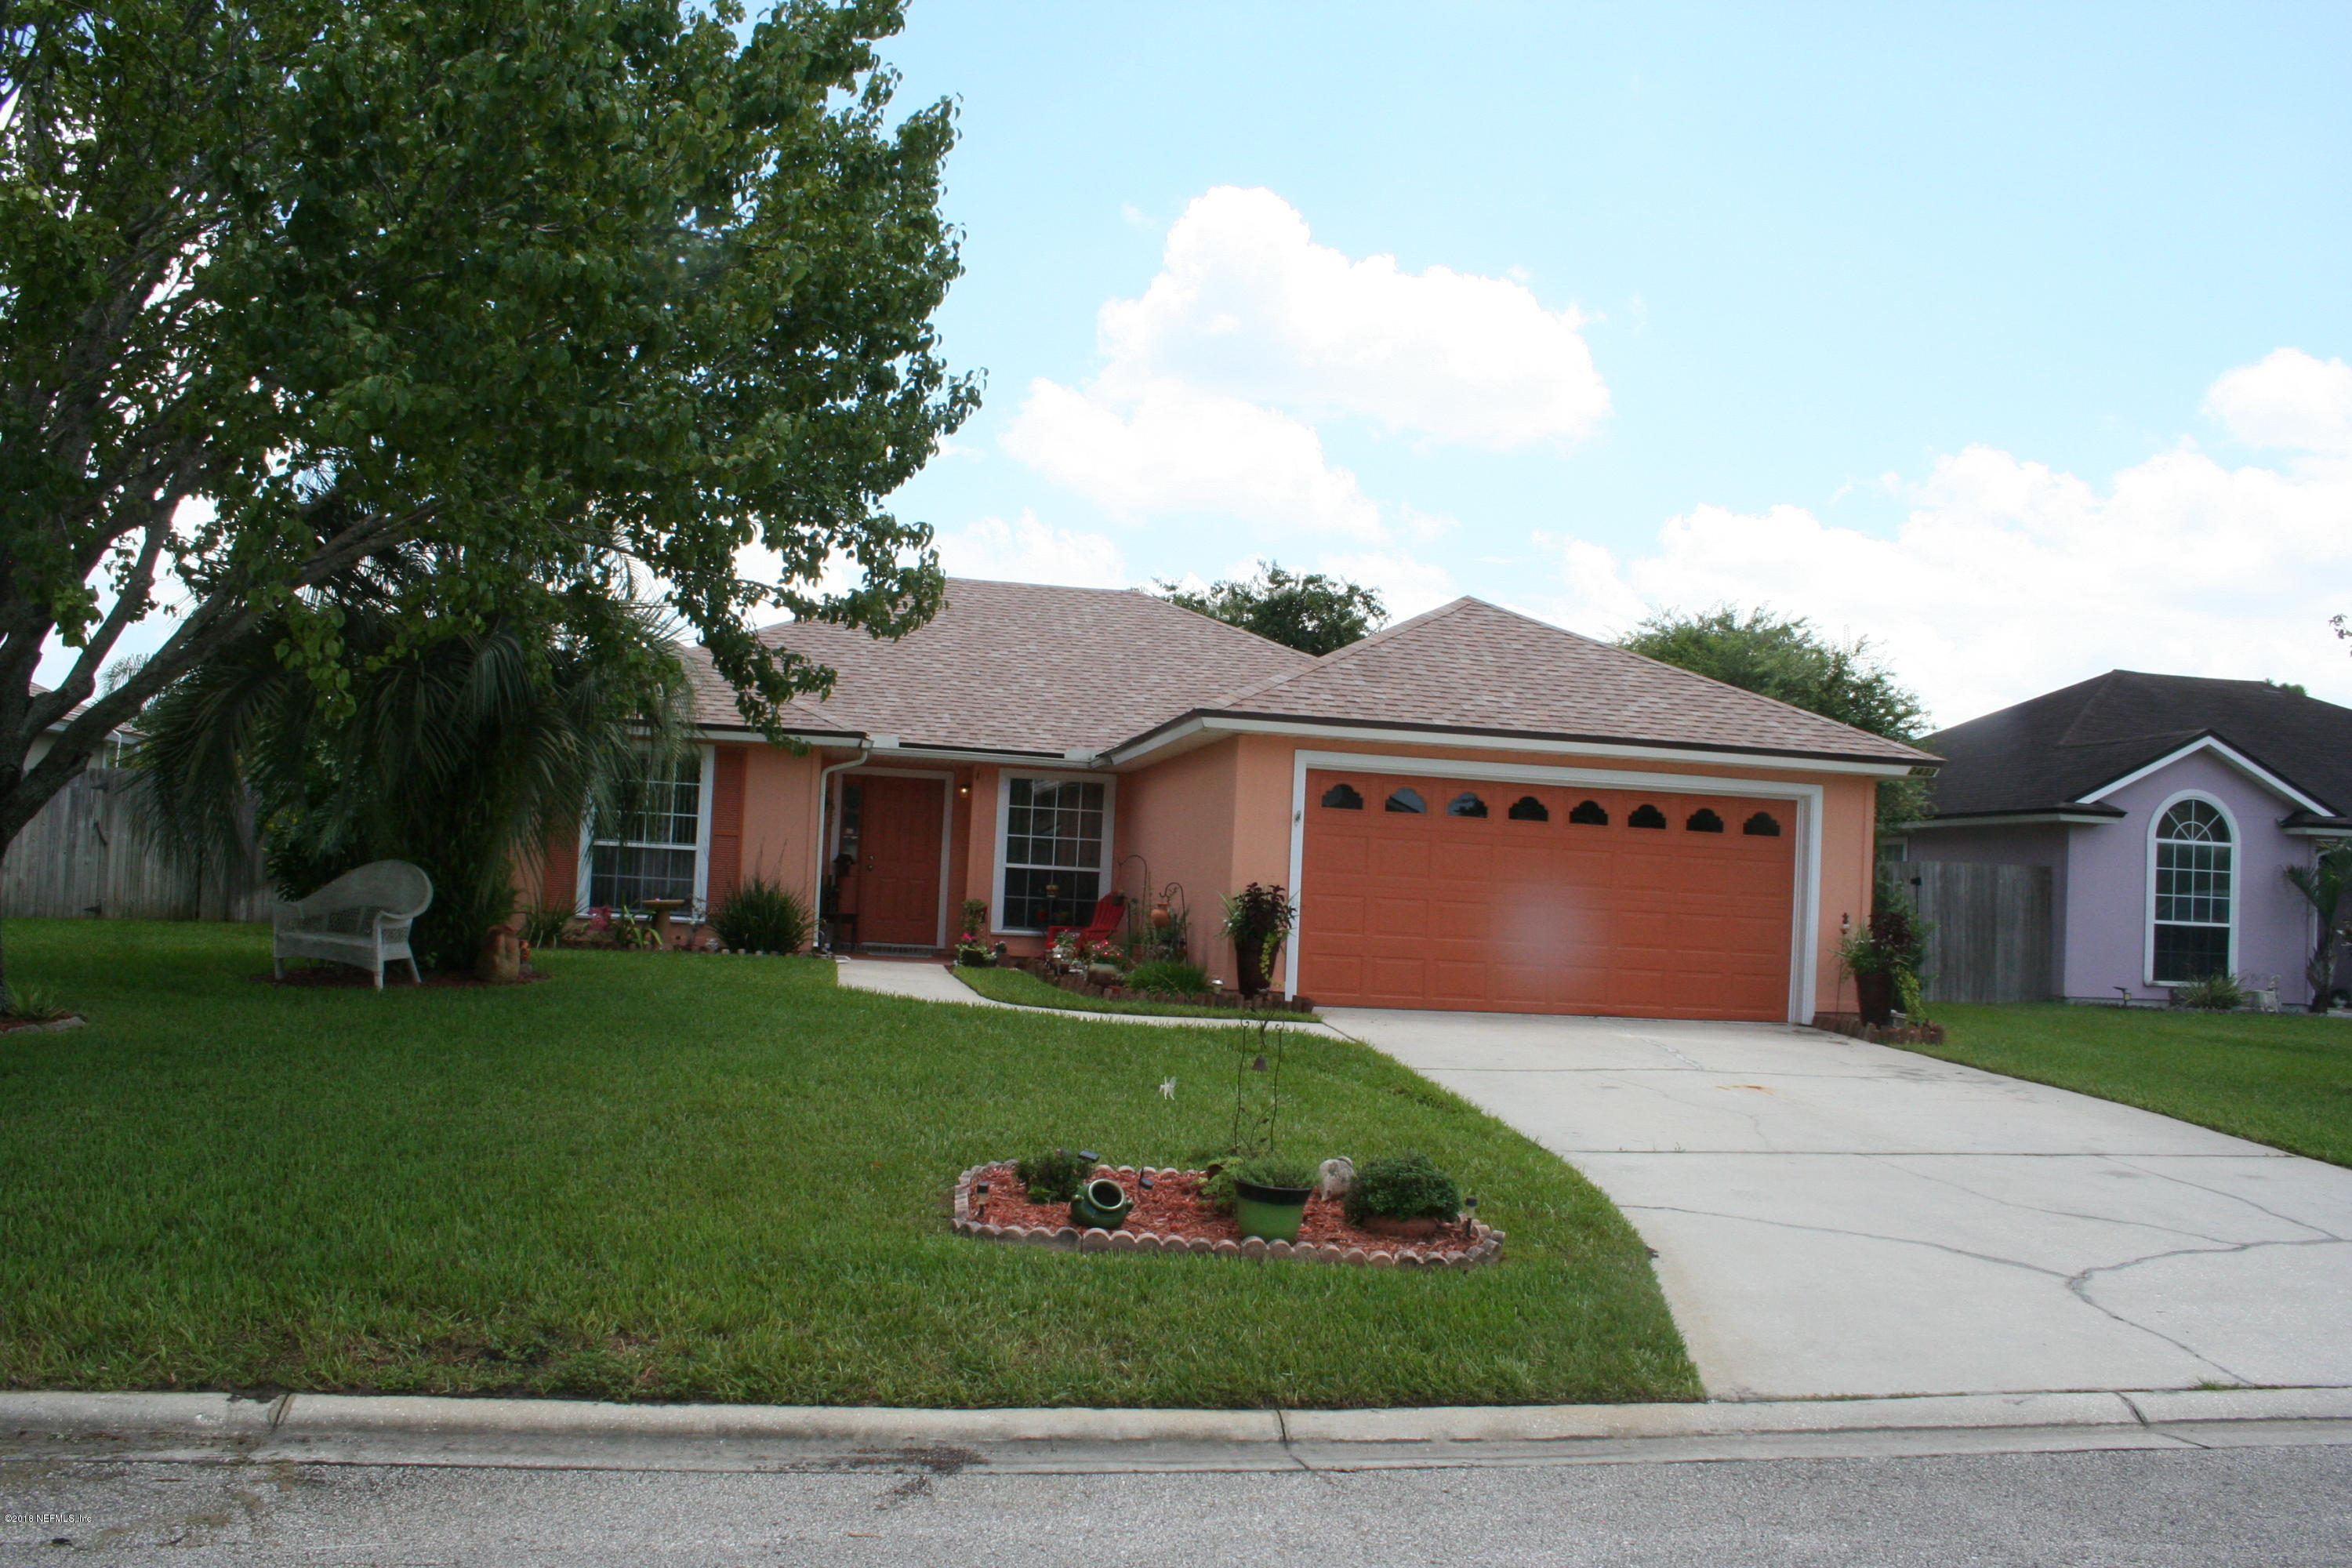 2433 COOL SPRINGS, JACKSONVILLE, FLORIDA 32246, 3 Bedrooms Bedrooms, ,2 BathroomsBathrooms,Residential - single family,For sale,COOL SPRINGS,949207